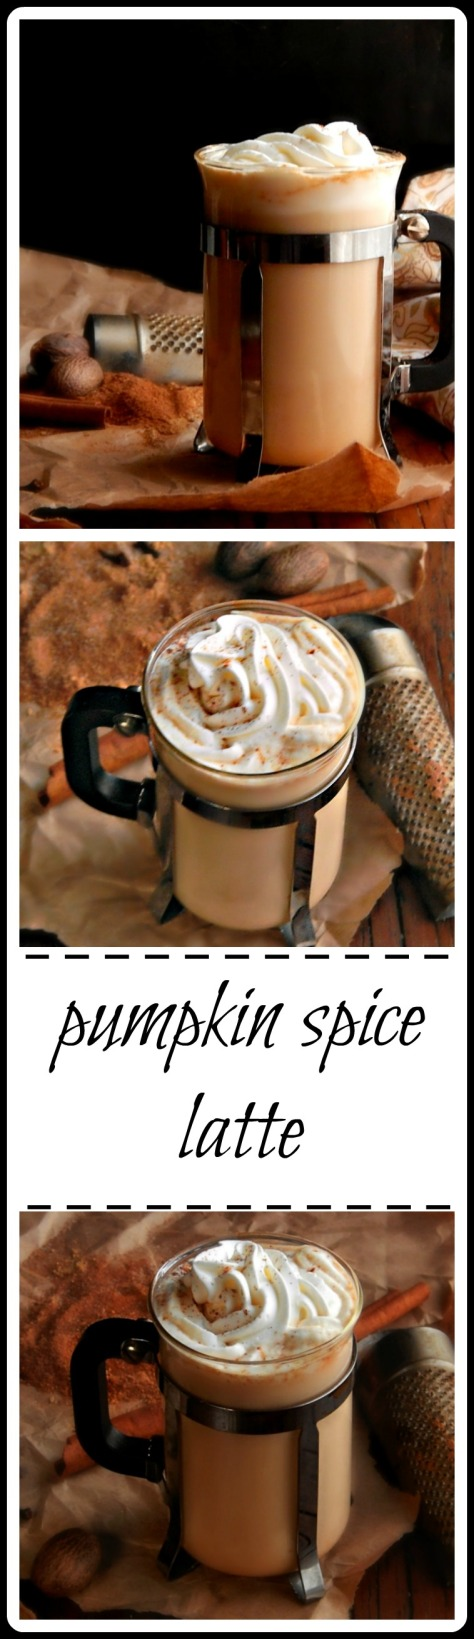 Pumpkin Spice Latte - simple, frugal & minutes to make!